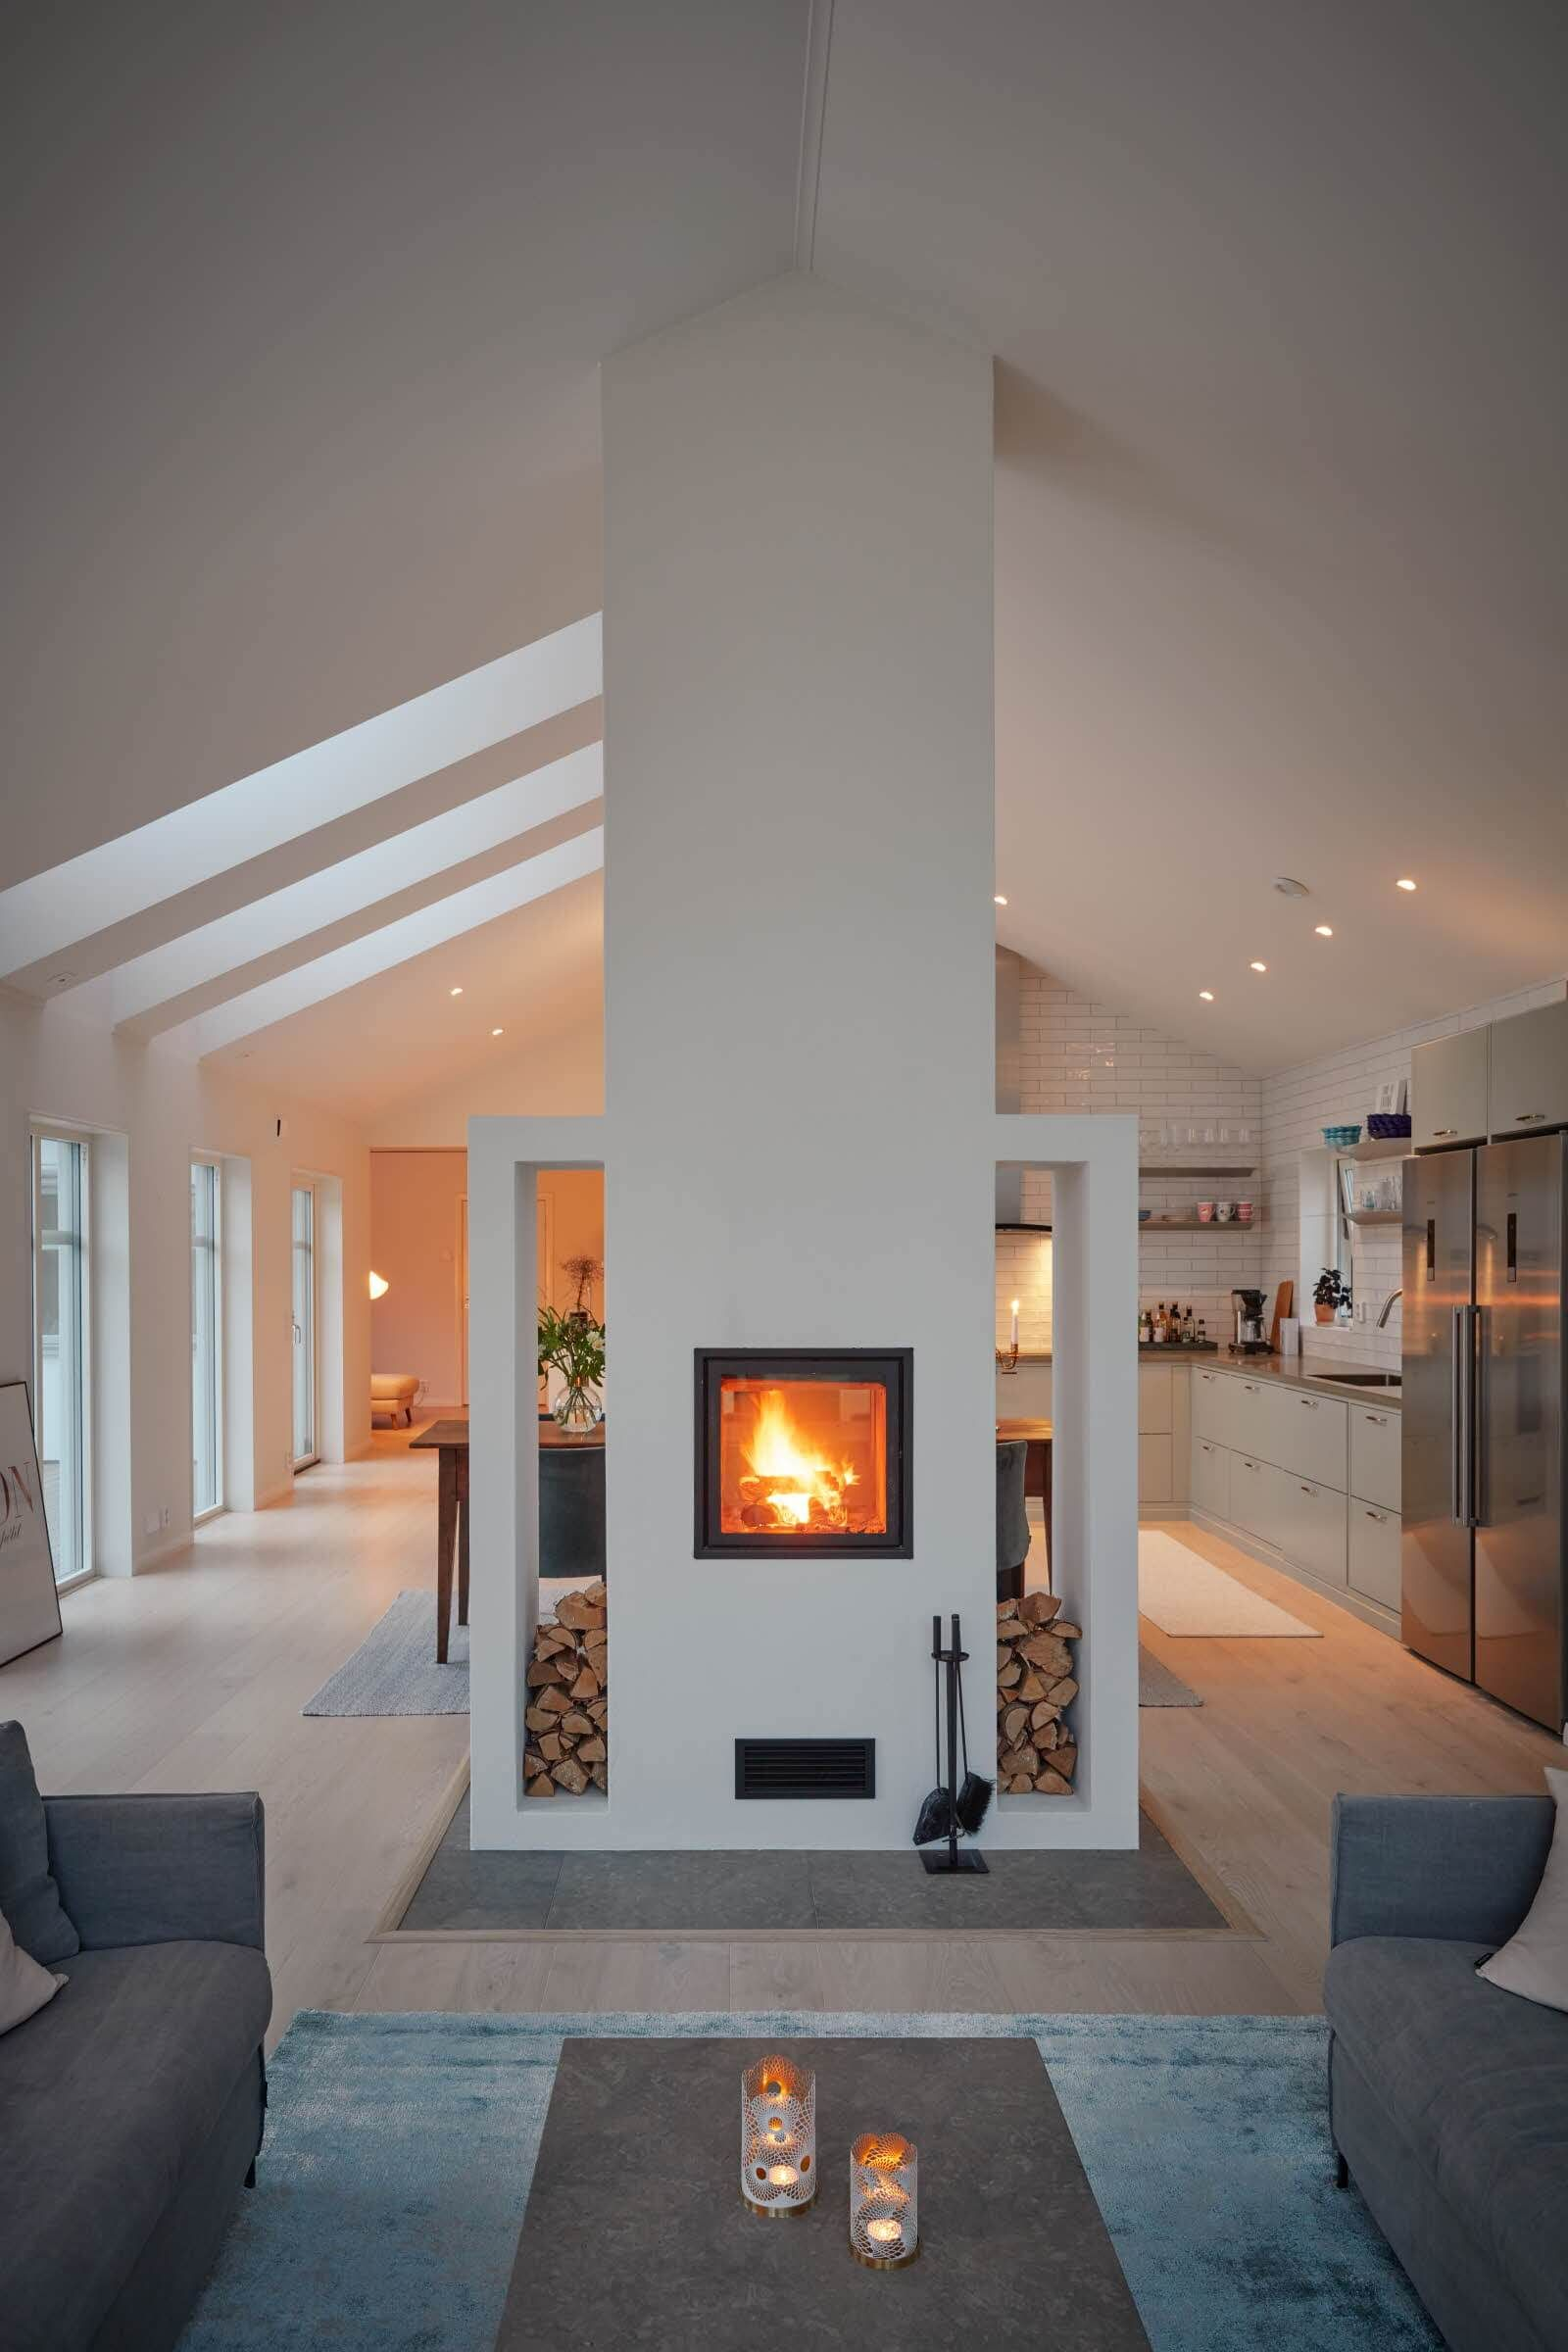 Fireplace Design Images New 16 Gorgeous Double Sided Fireplace Design Ideas Take A Look